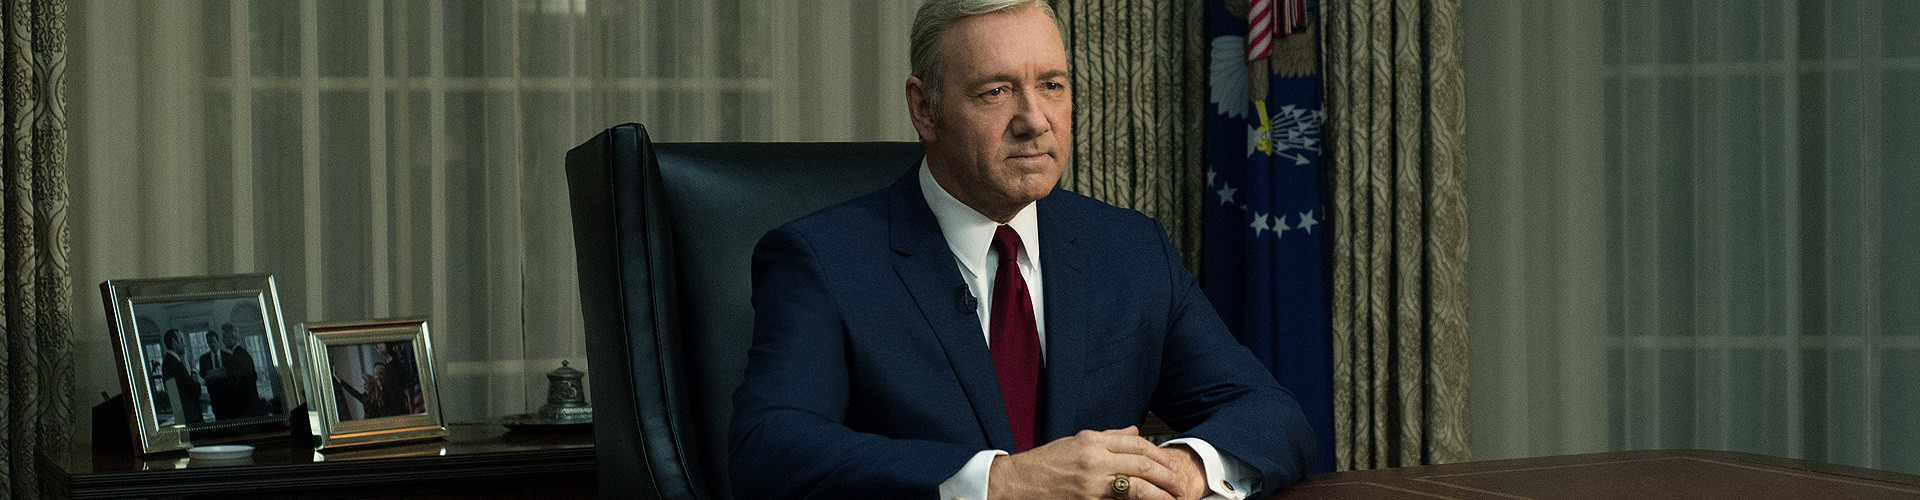 HouseOfCards-success-banner-1920x520.jpg